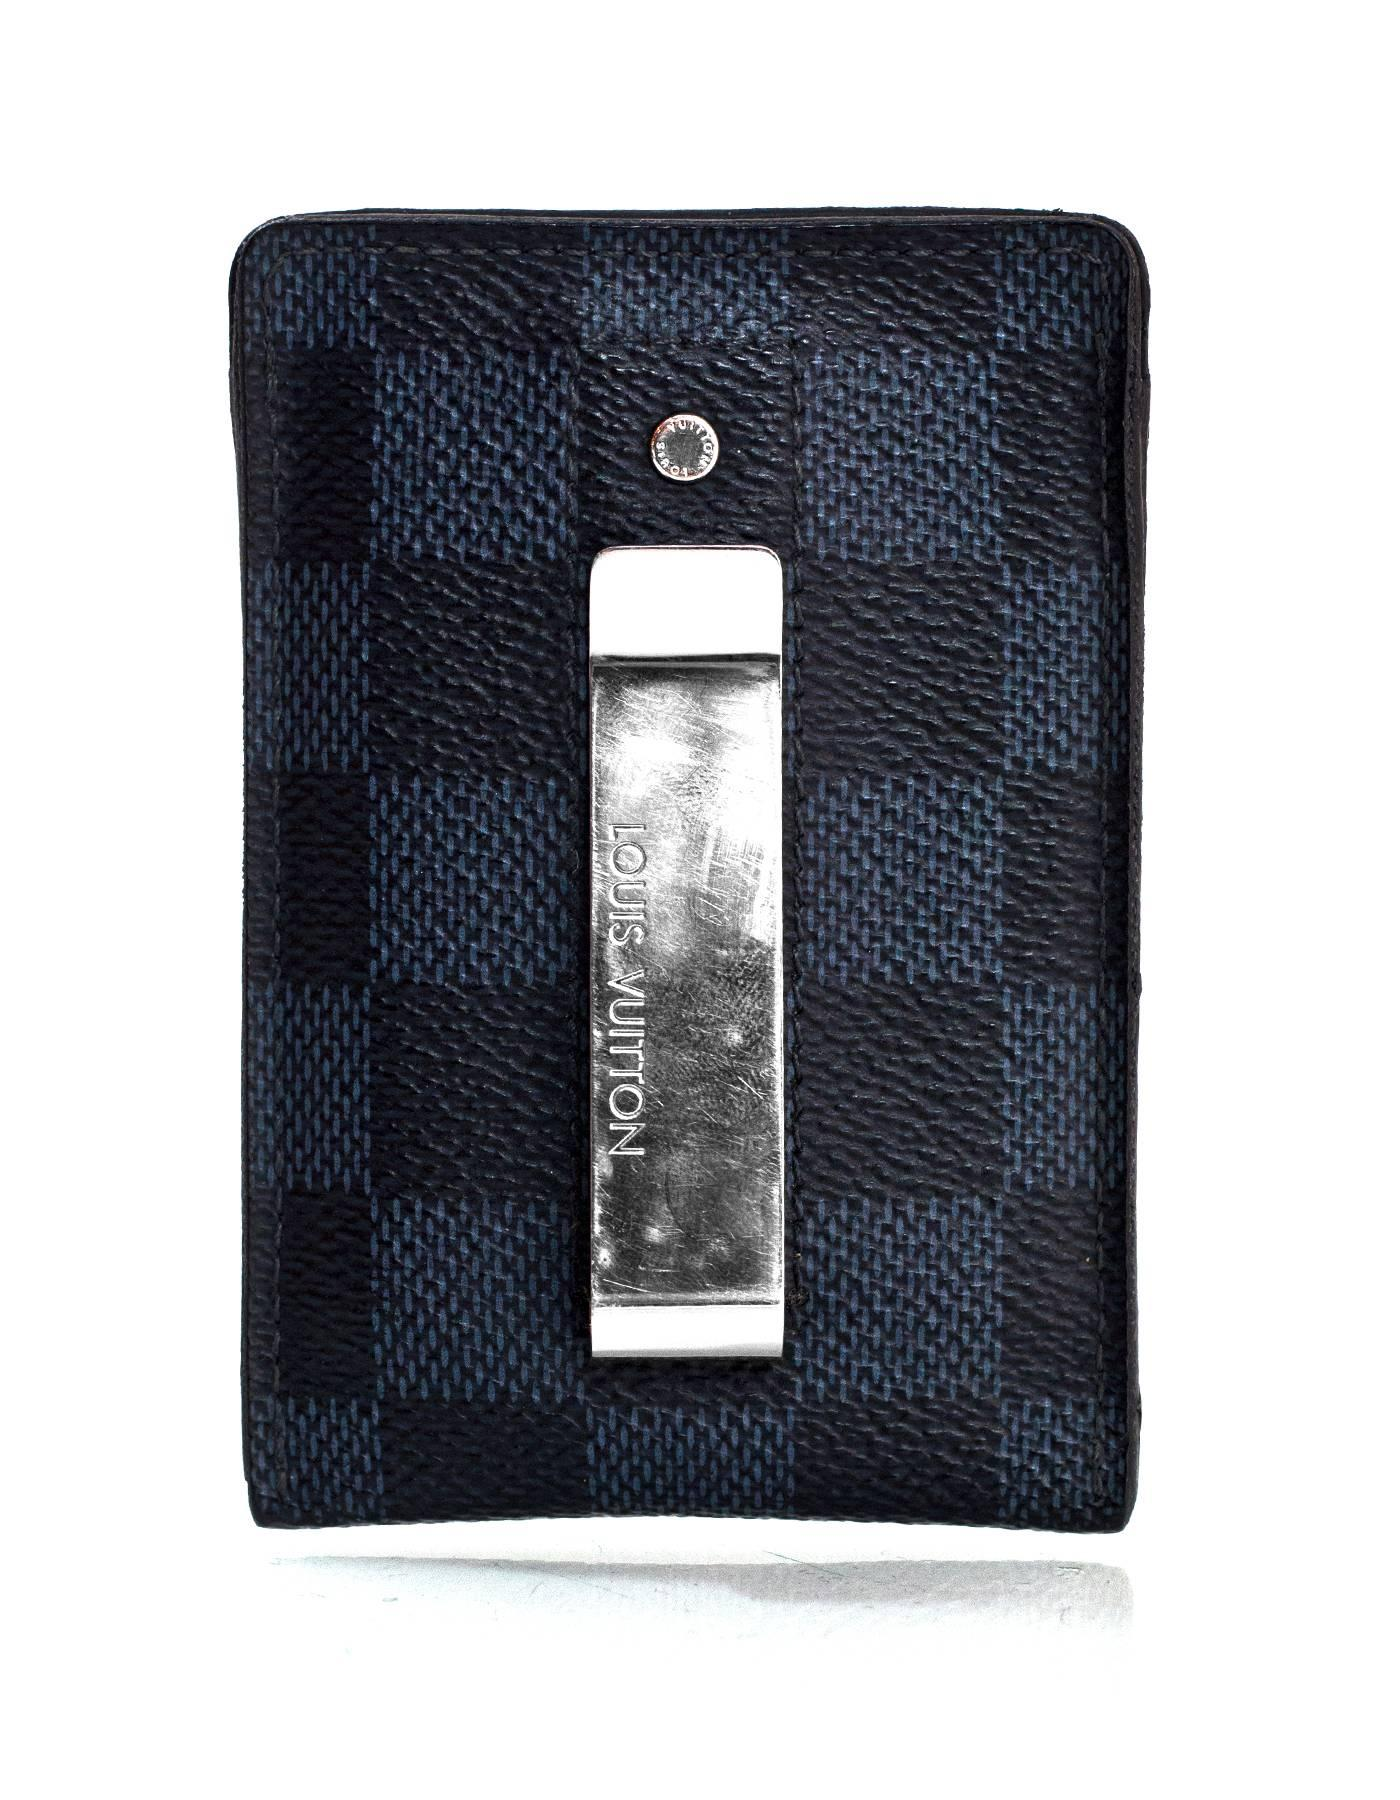 huge selection of 61865 77e1d Louis Vuitton Men's Damier Cobalt Card Holder/Money Clip SHW